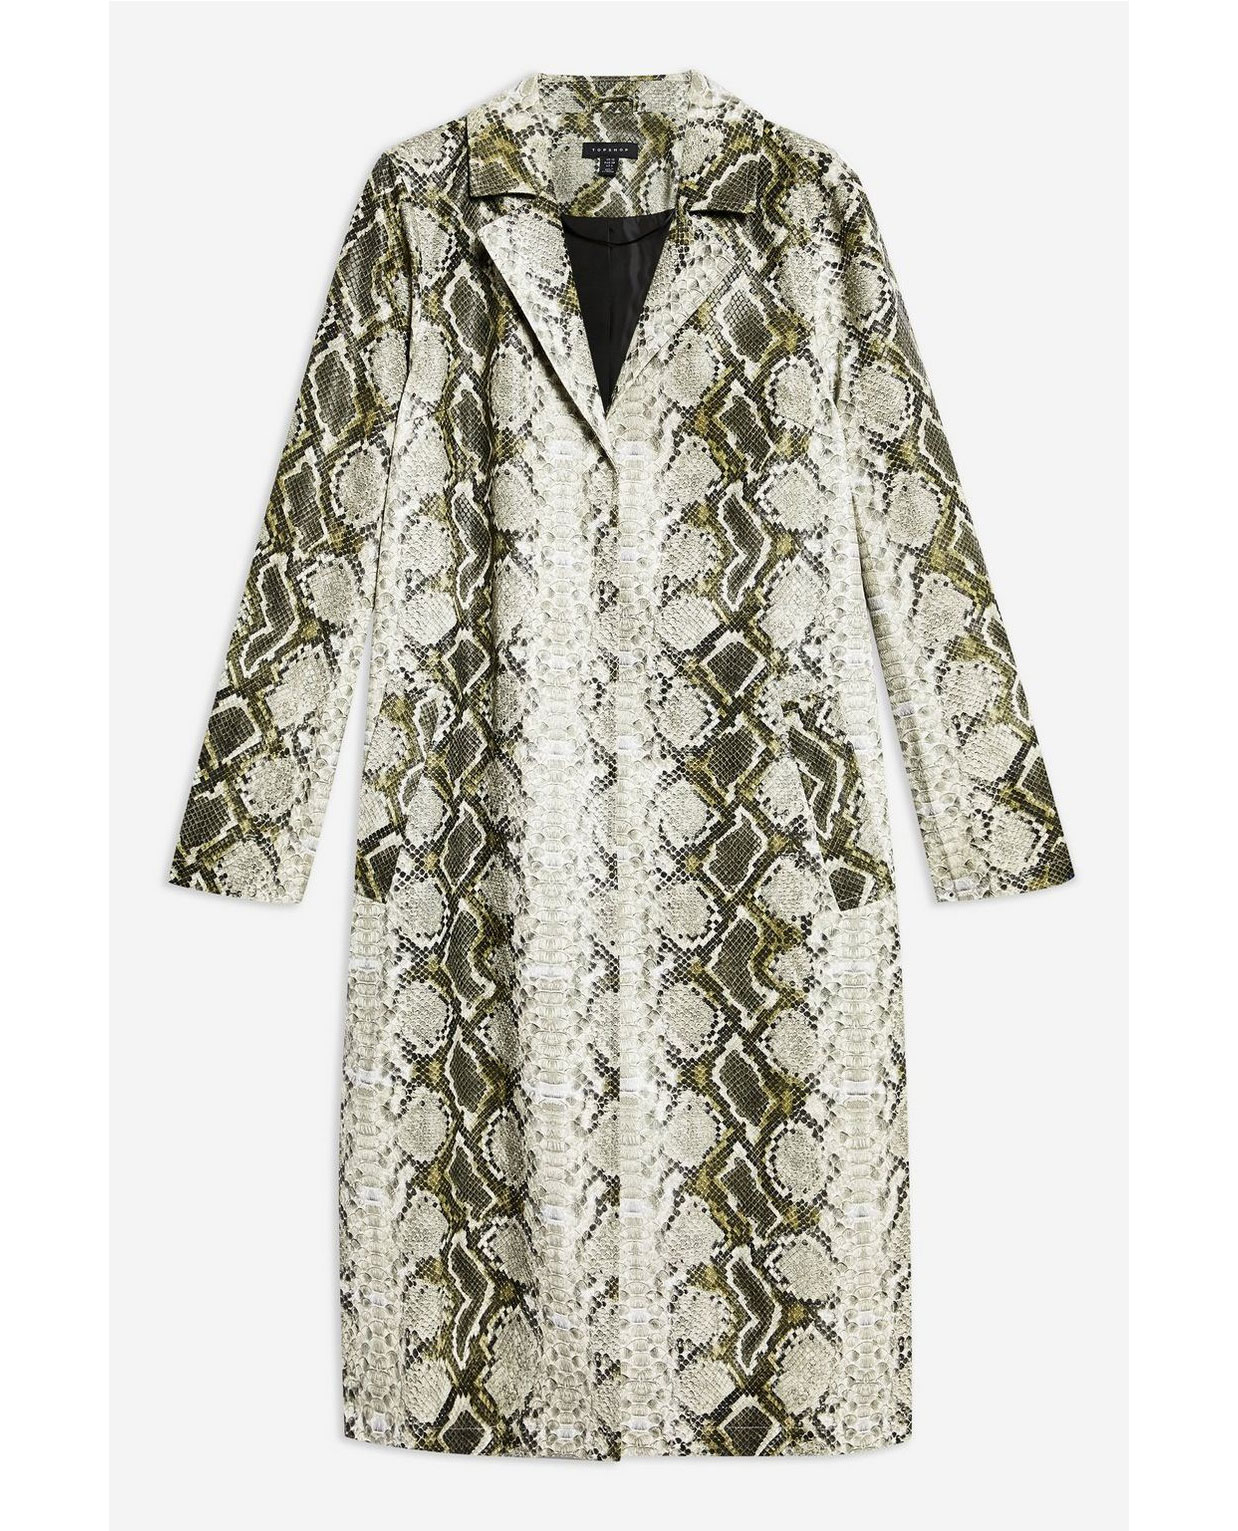 Top Shop Snake Print Coat     $160